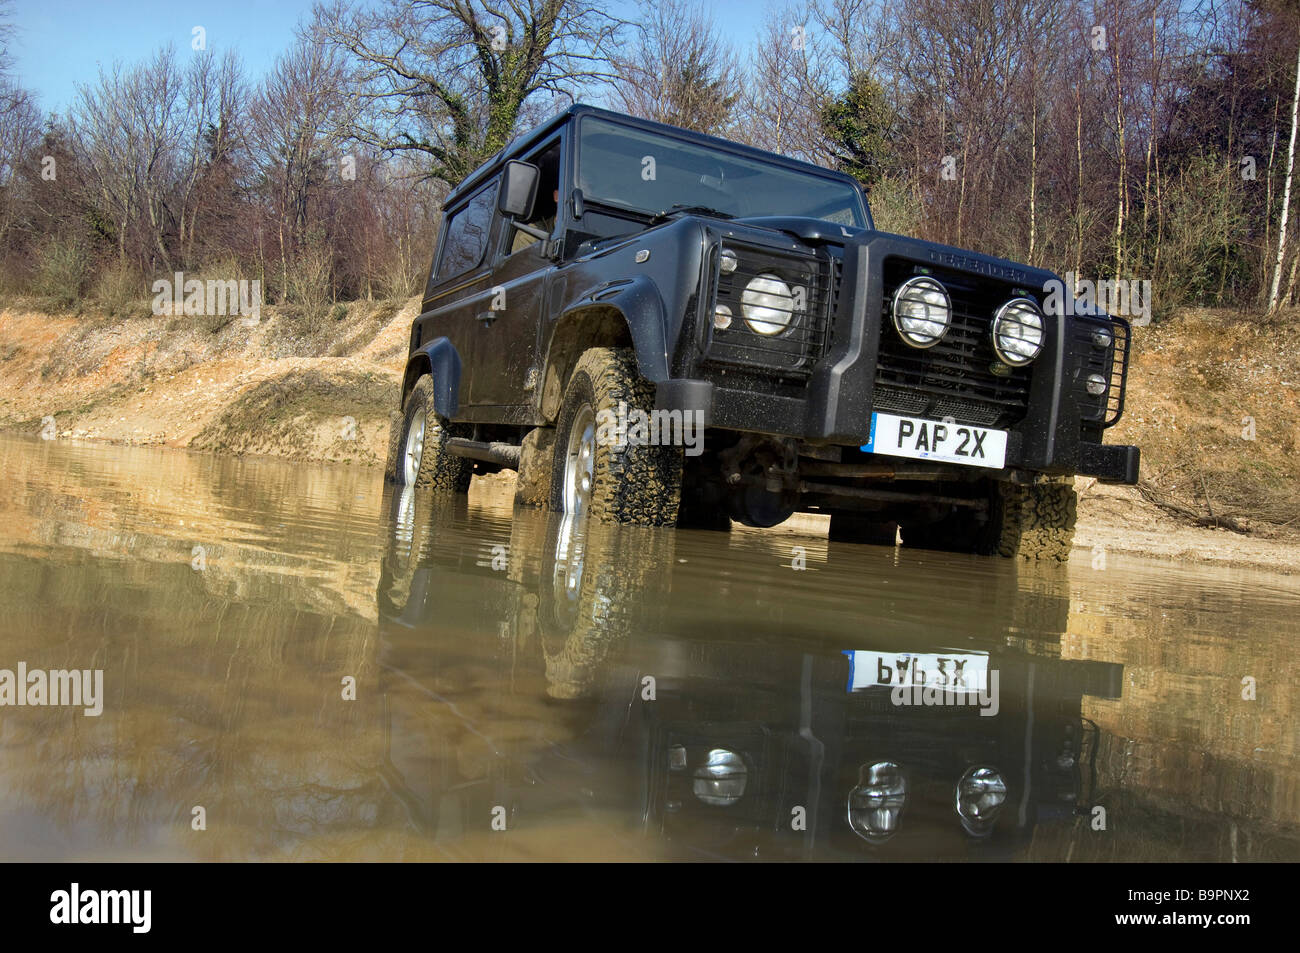 A Land Rover Defender 90 on an offroad trail - Stock Image